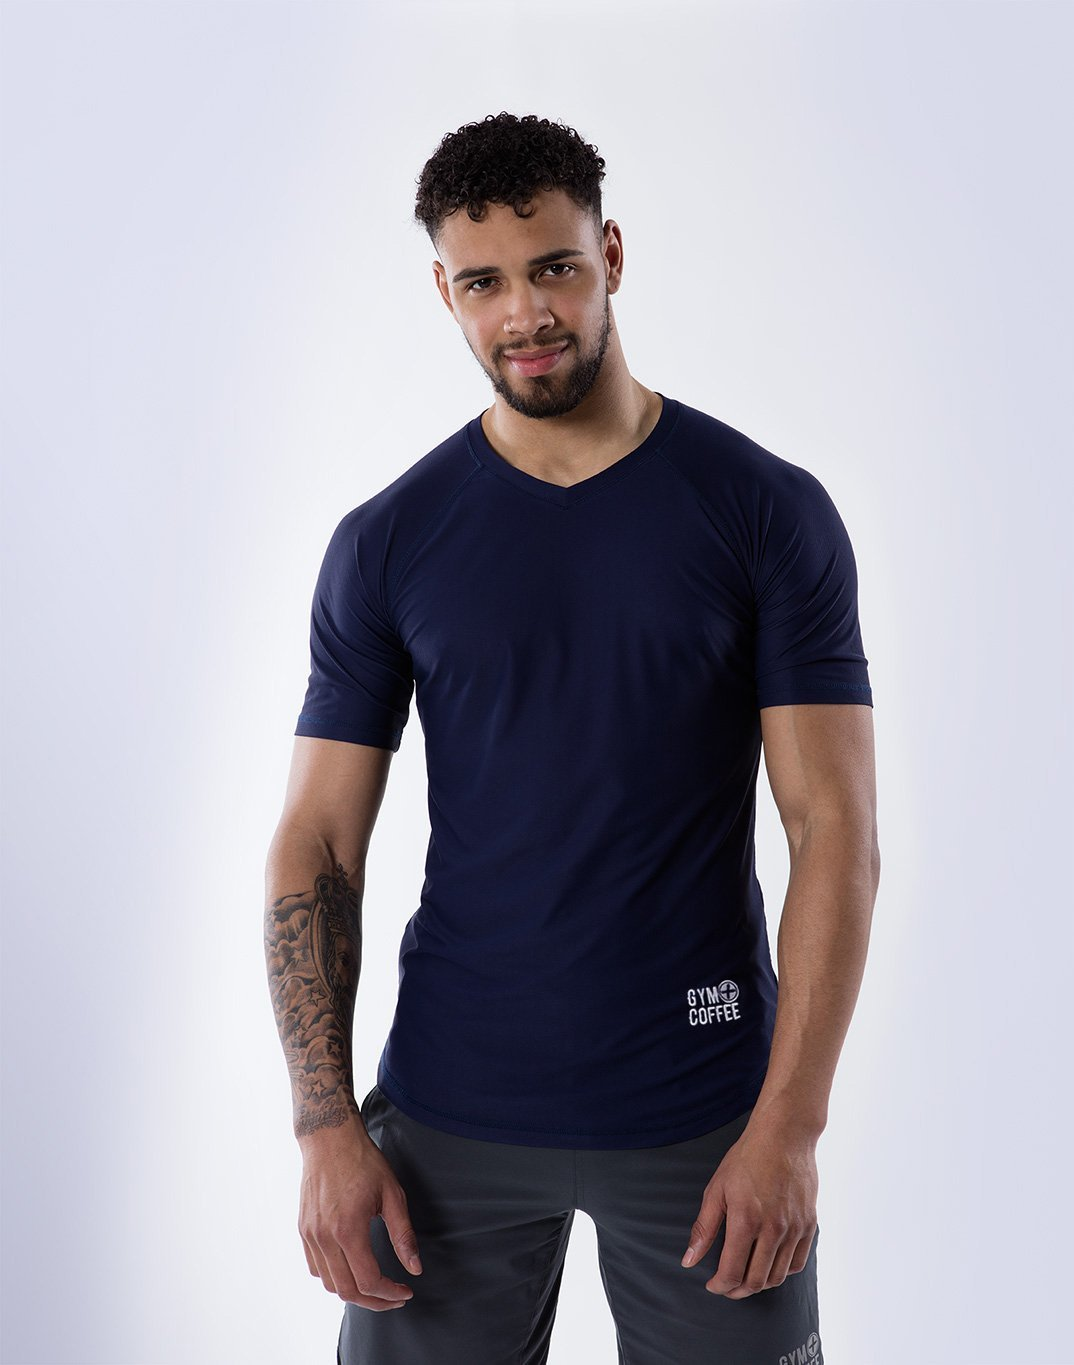 Gym Plus Coffee Men's T-Shirt V-Tech Tee in Navy Designed in Ireland